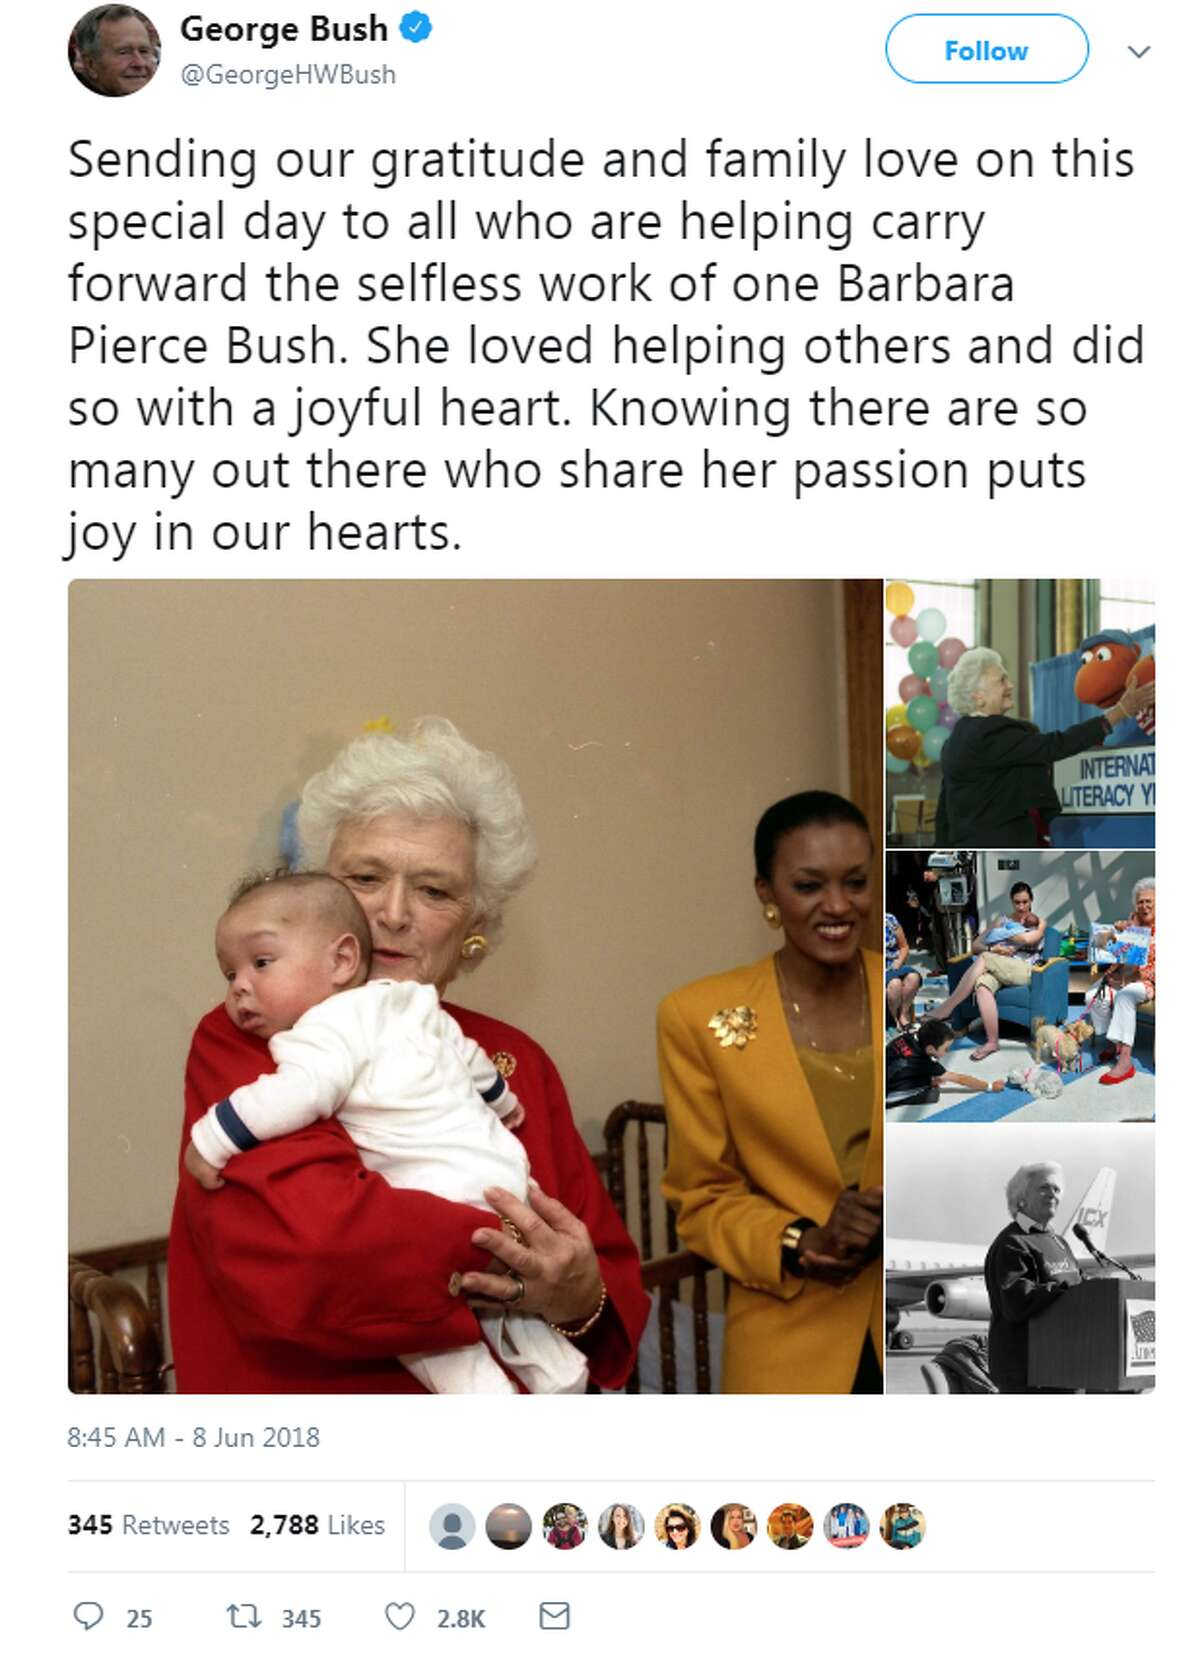 Former President George H.W. Bush celebrated what would have been Barbara Bush's 93rd birthday with a touching message on Twitter.